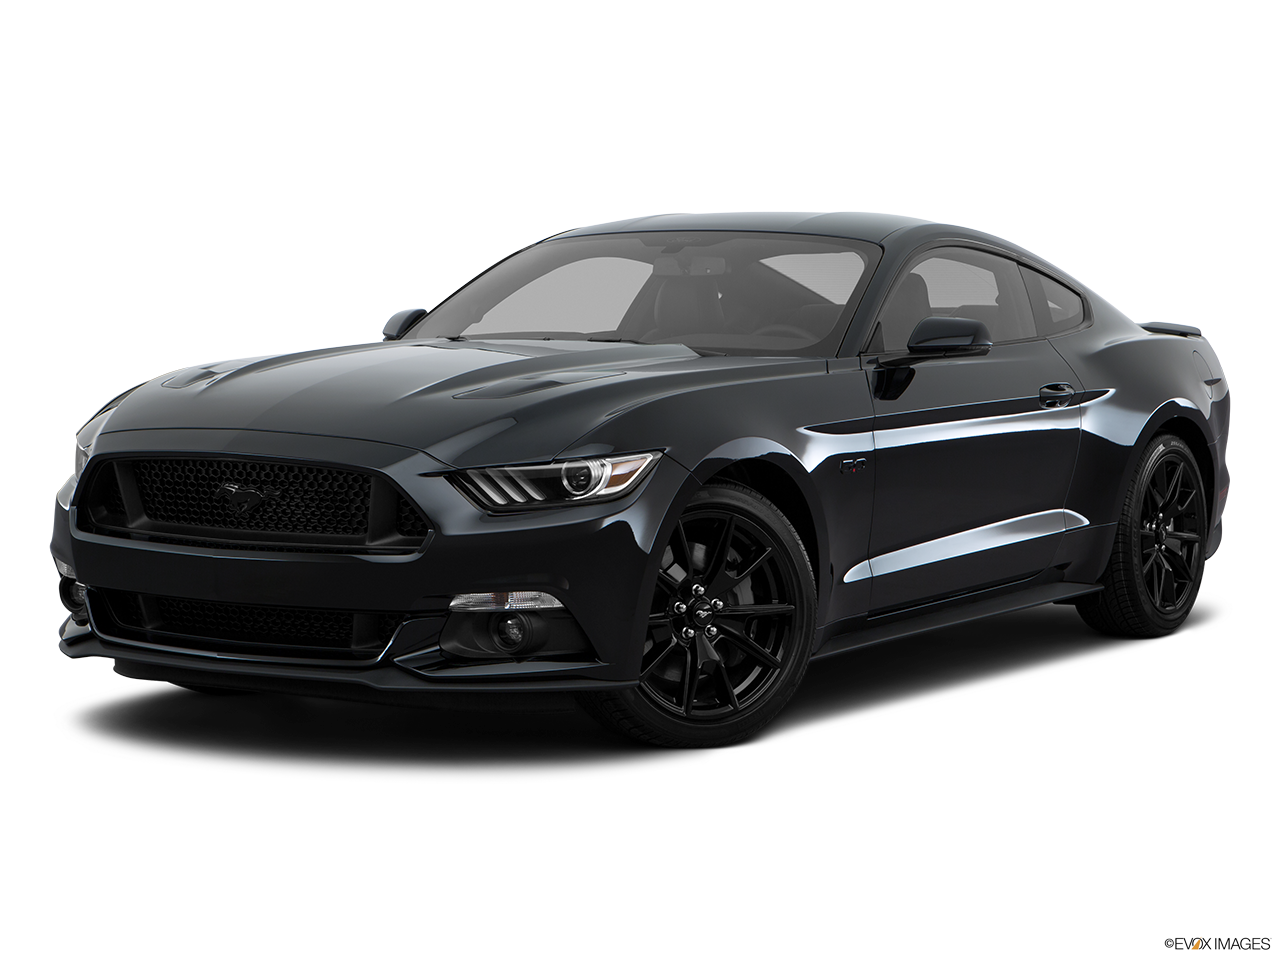 Test Drive A 2017 Ford Mustang at All Star Ford Canton in Canton